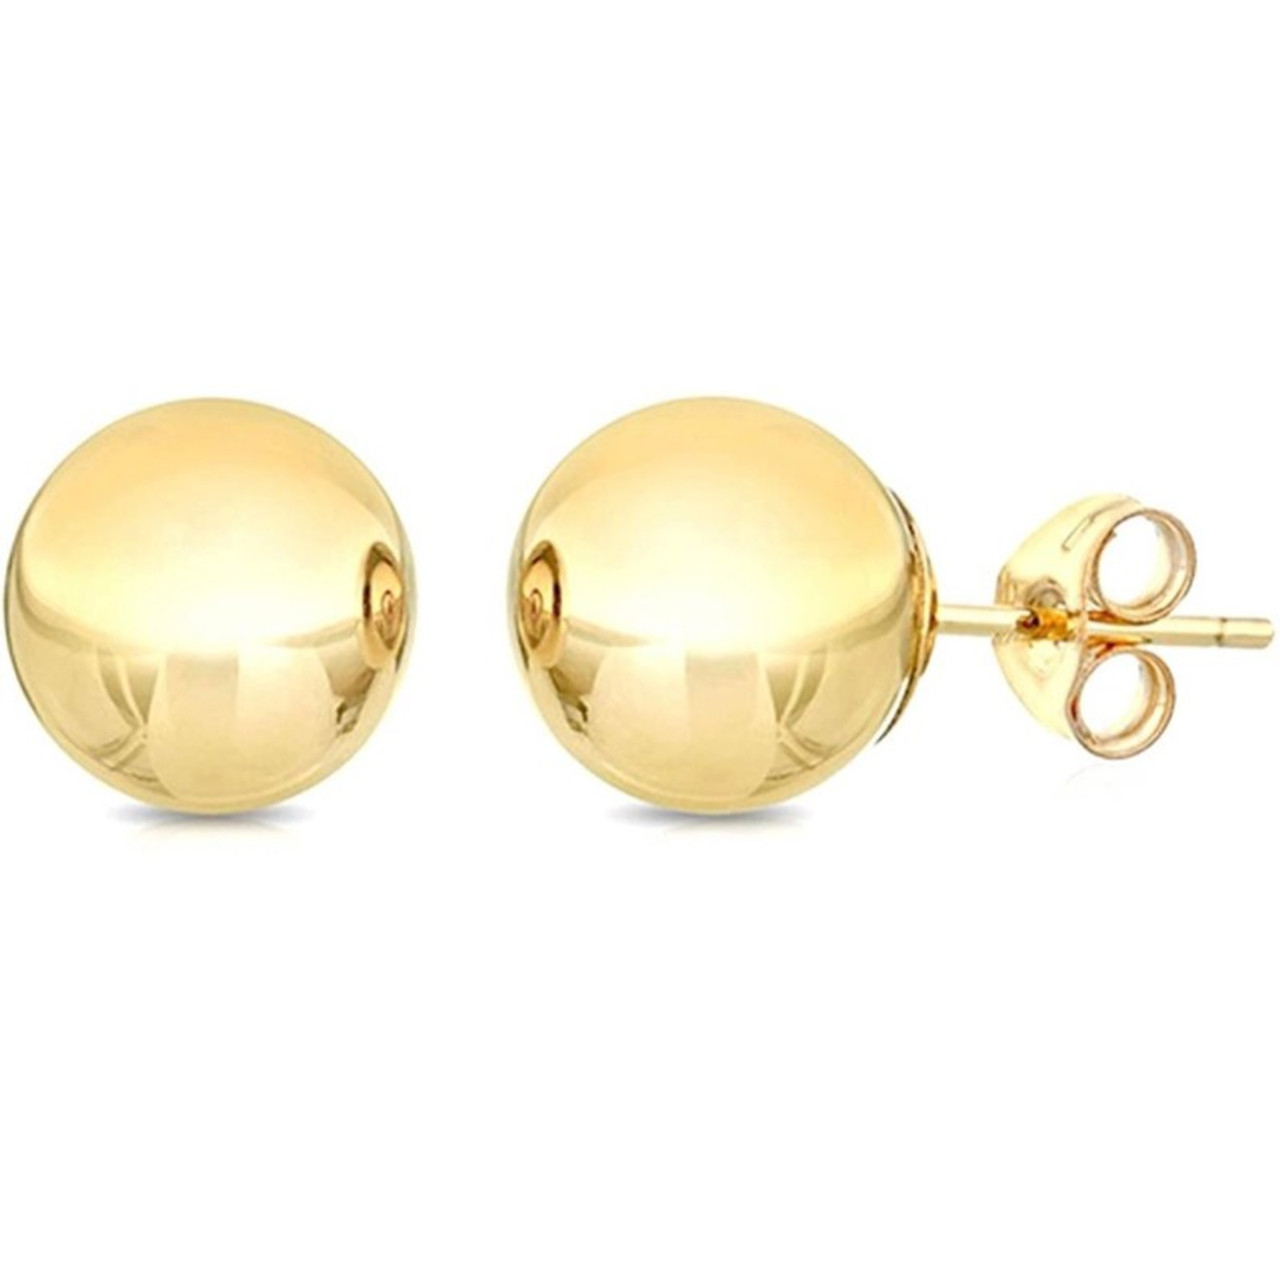 Solid Sterling Silver Ball Studs Earrings